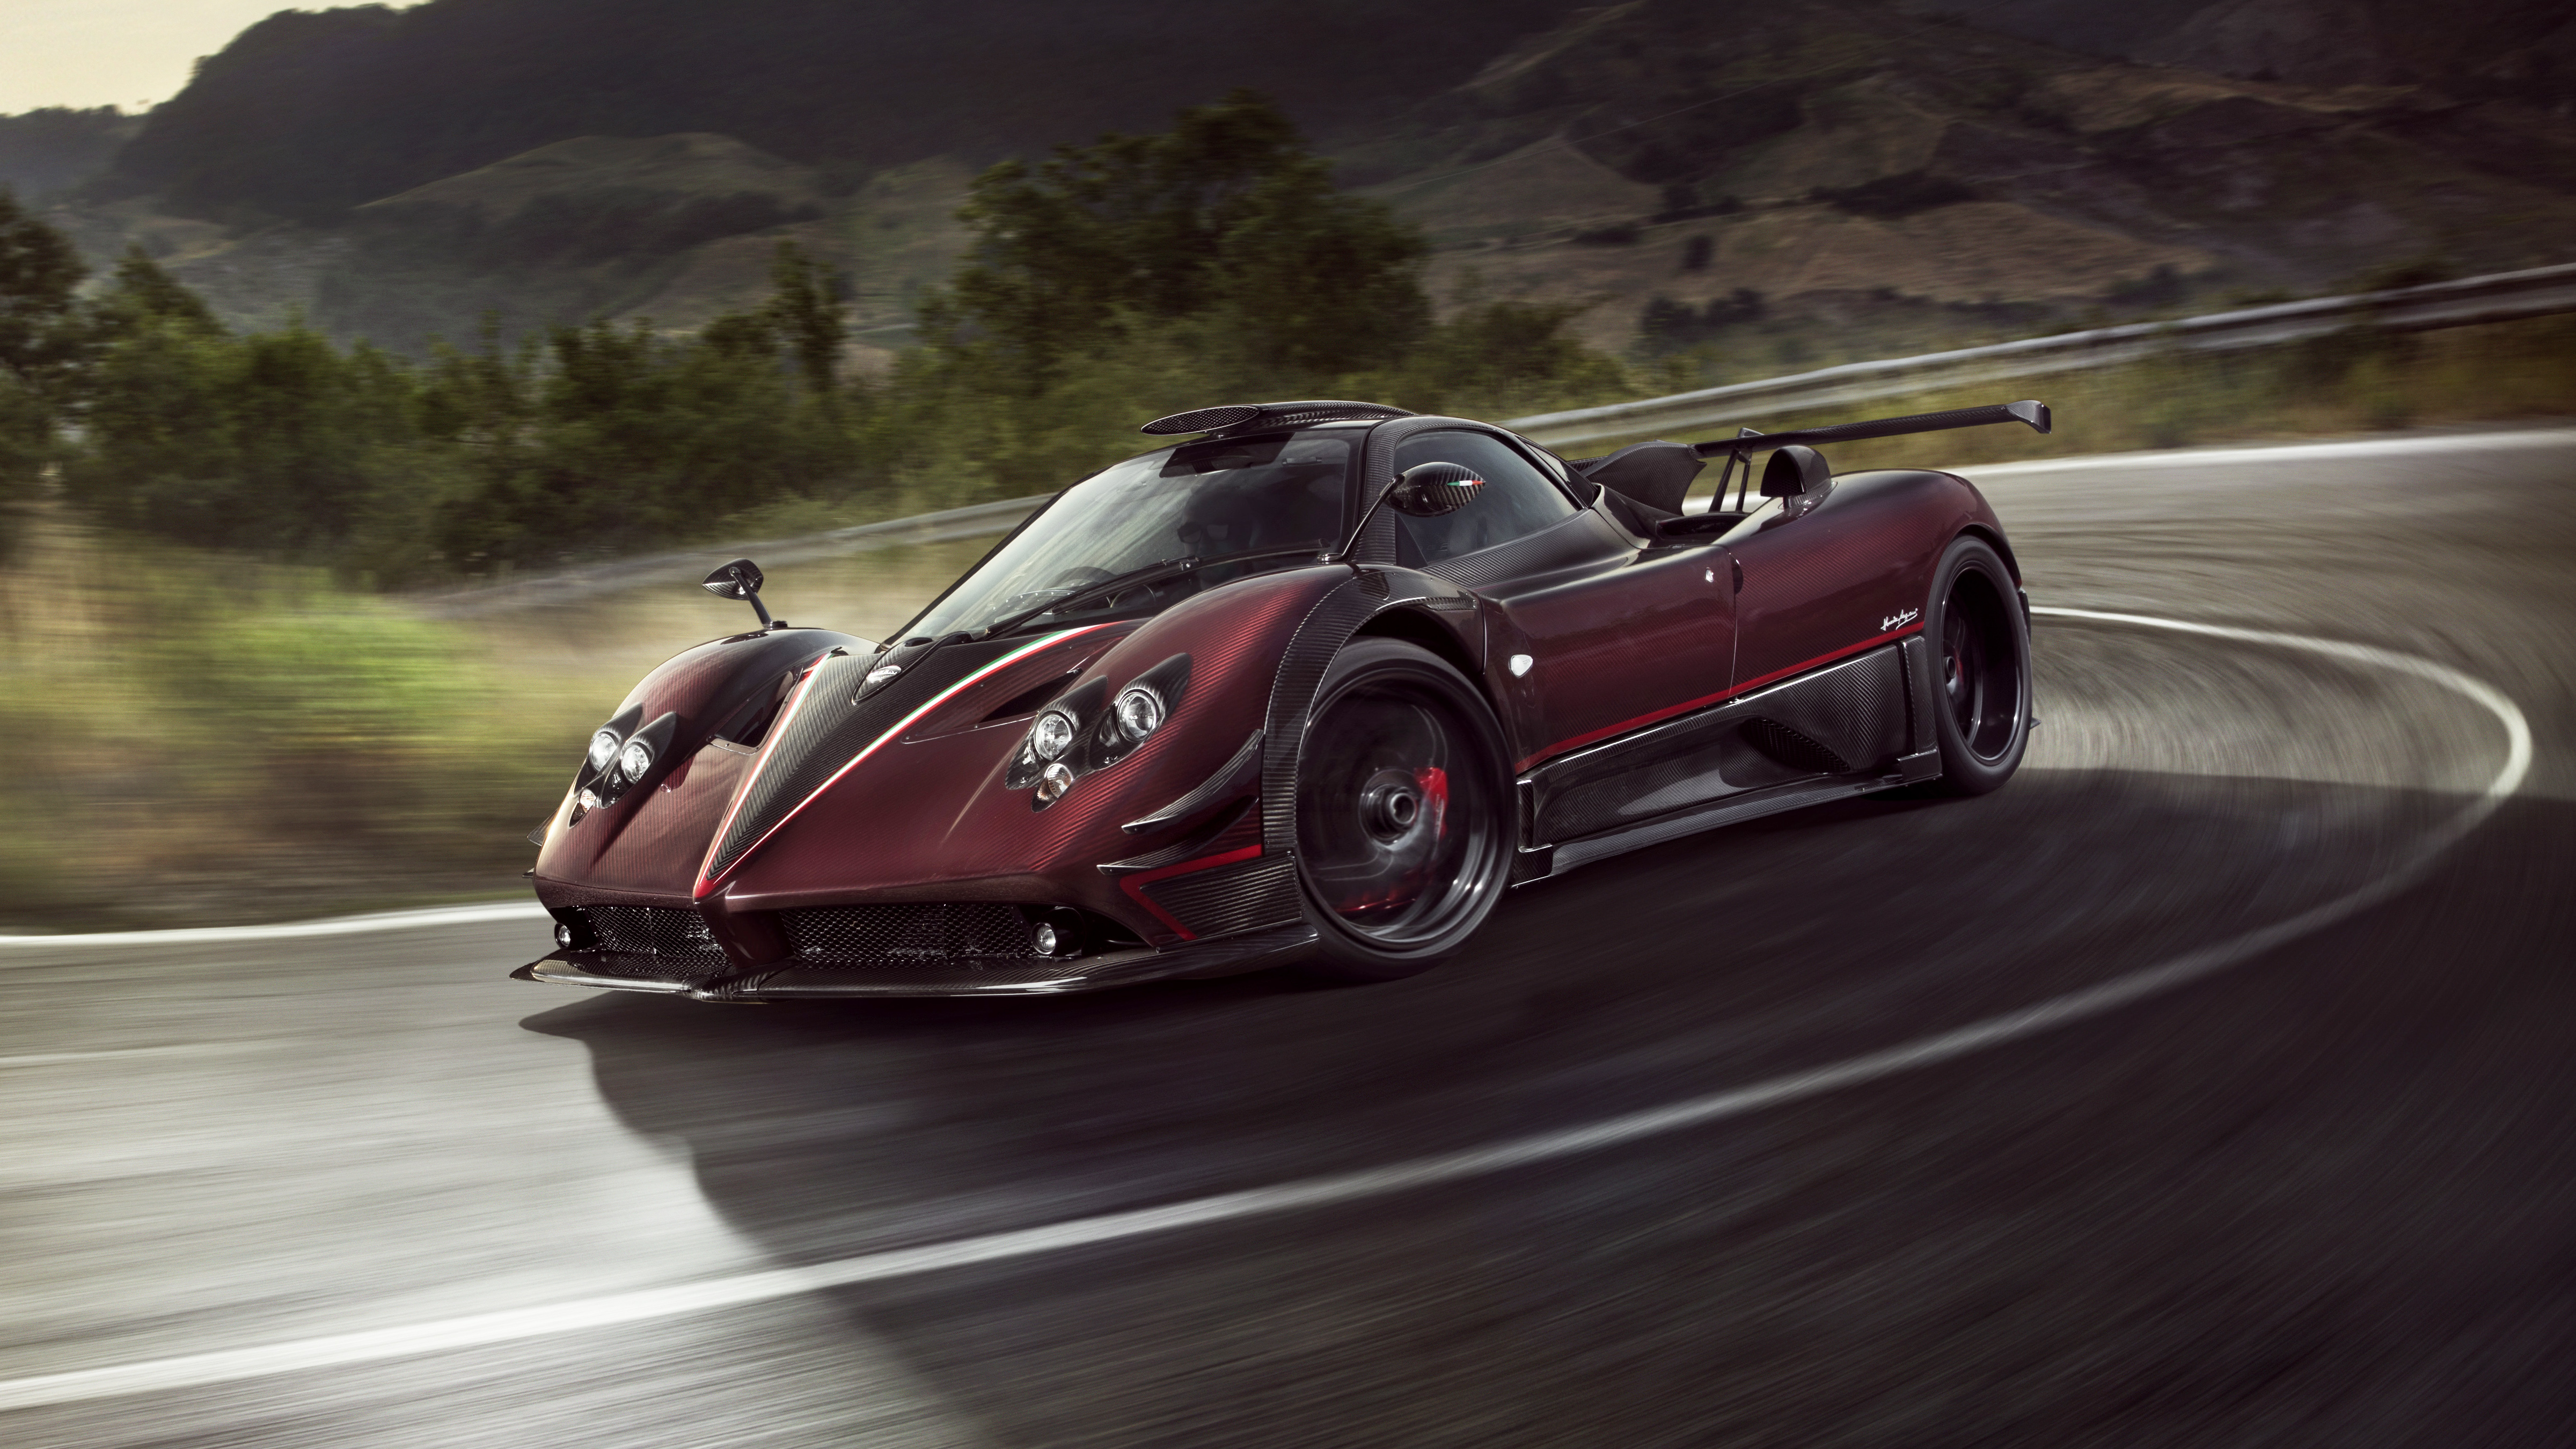 the pagani zonda just won't die and we're fine with that | top gear